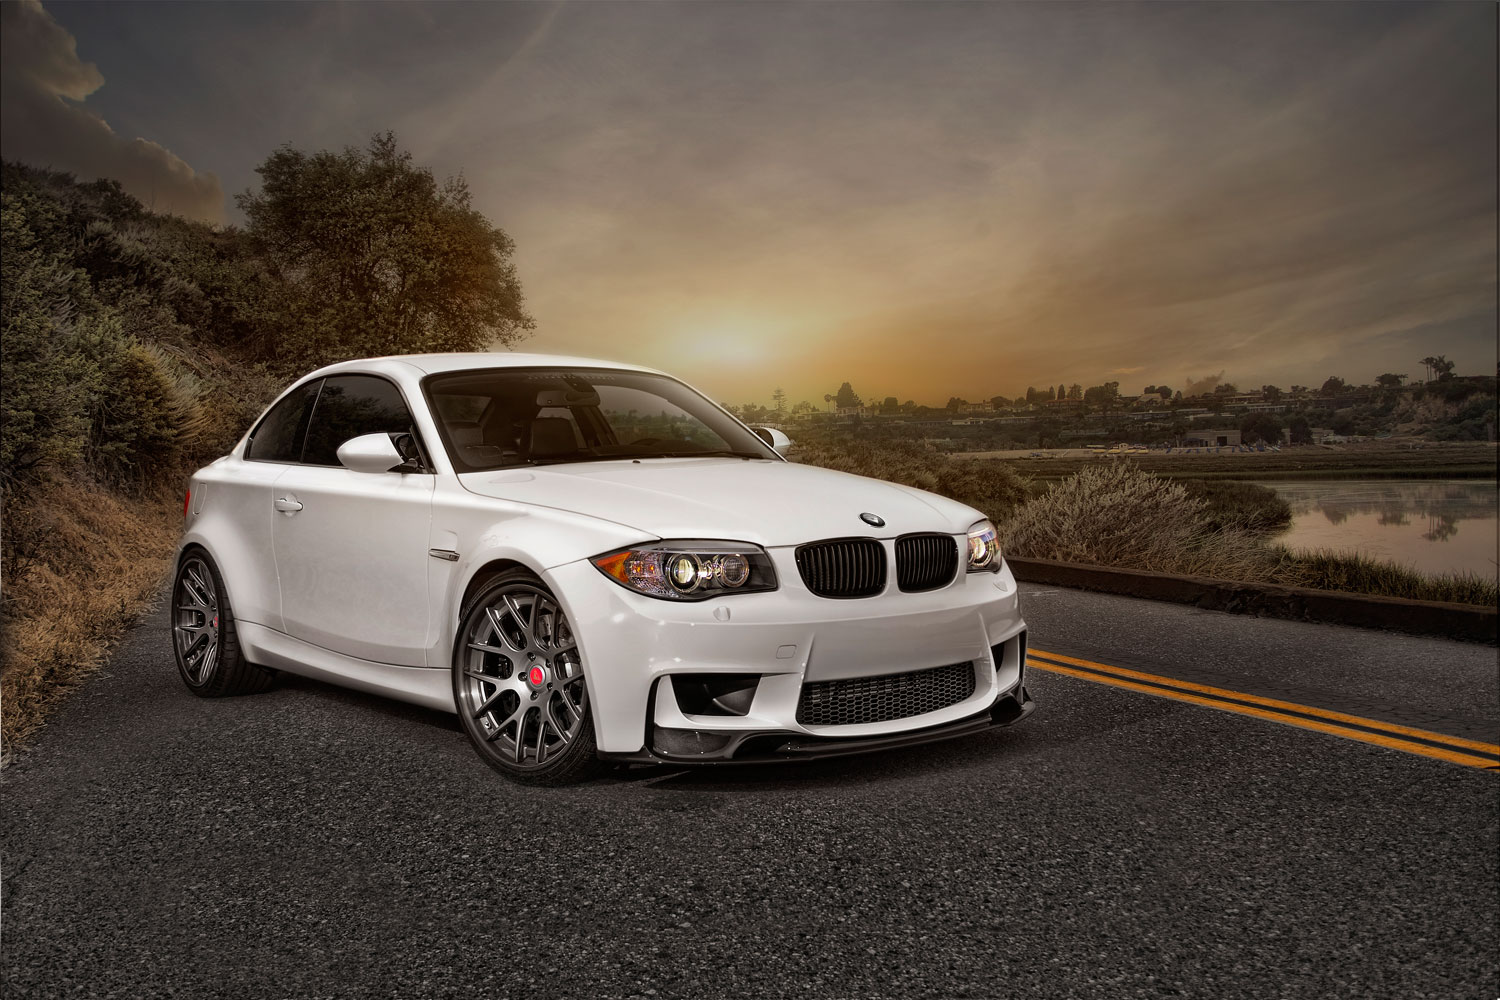 2012 bmw 1 series m coupe gts v by vorsteiner review top. Black Bedroom Furniture Sets. Home Design Ideas